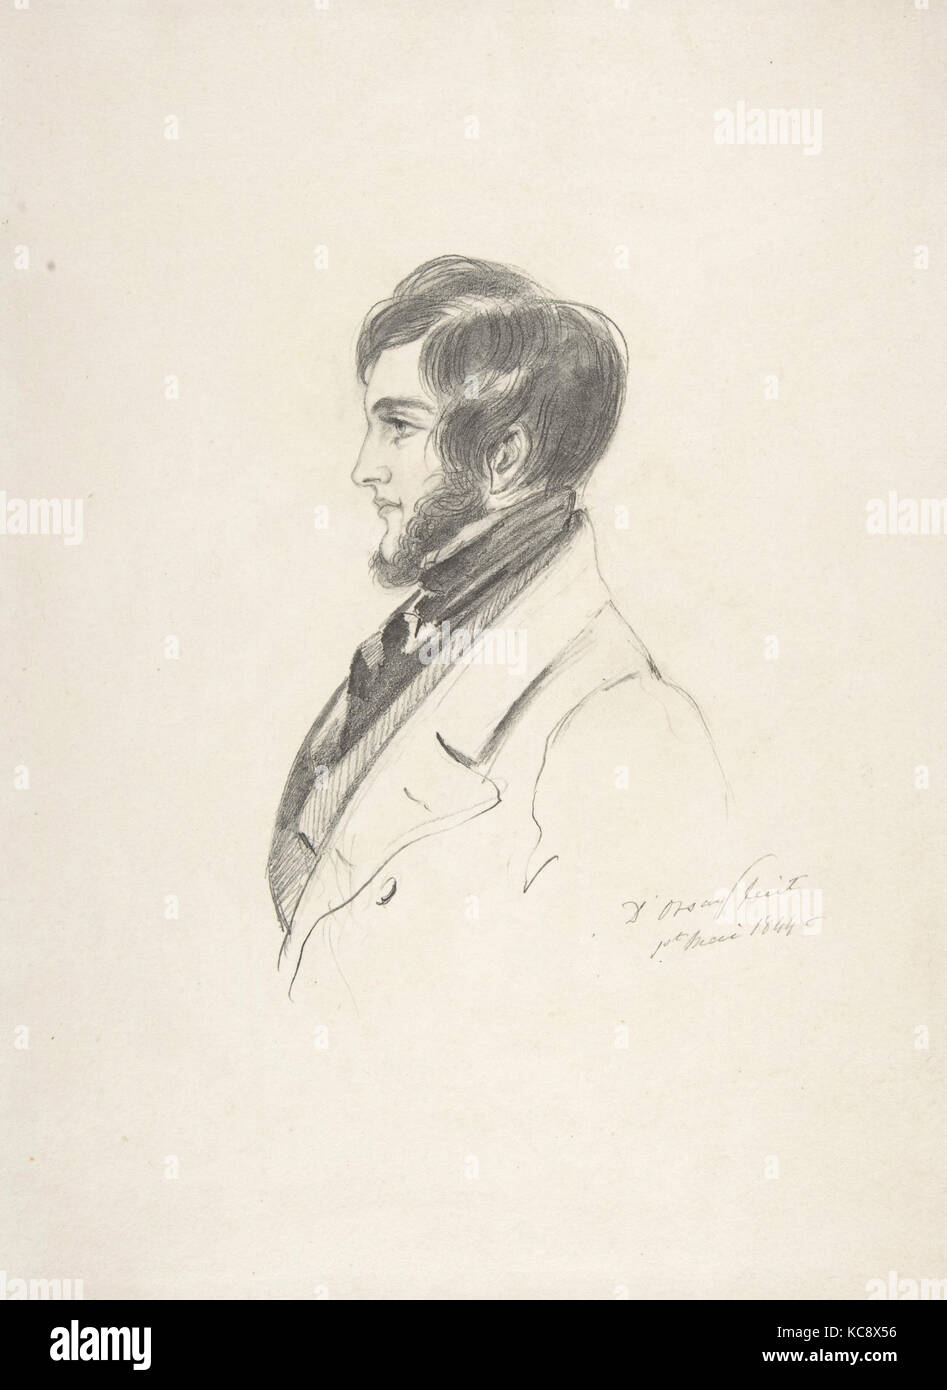 Portrait of Charles Kinnaird Sheridan, Count Alfred Guillaume Gabriel D'Orsay, 1844 - Stock Image